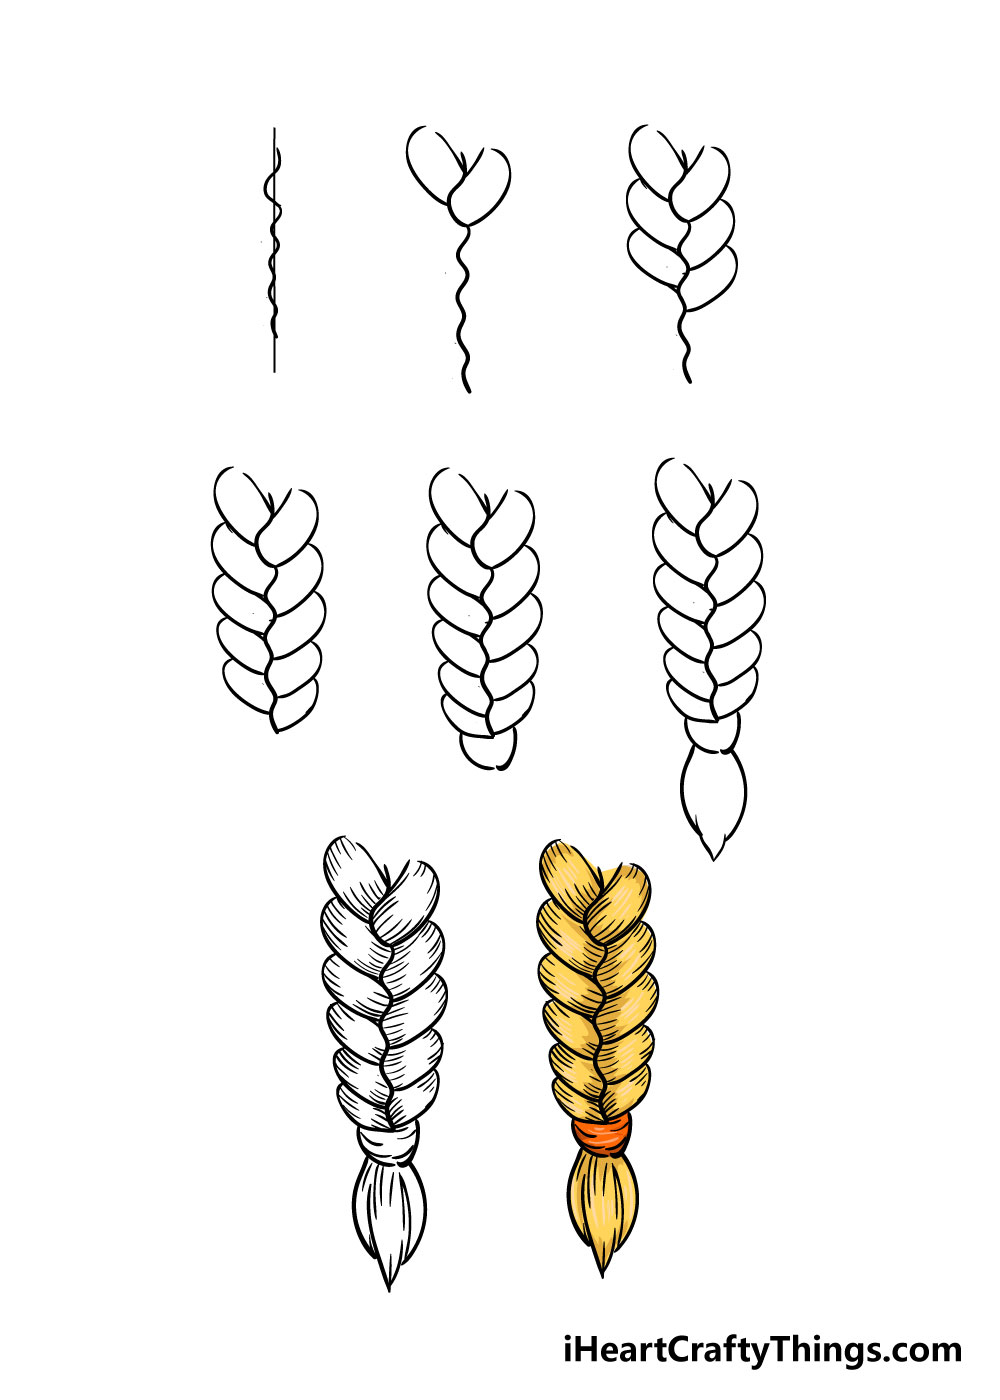 how to draw braid in 8 steps